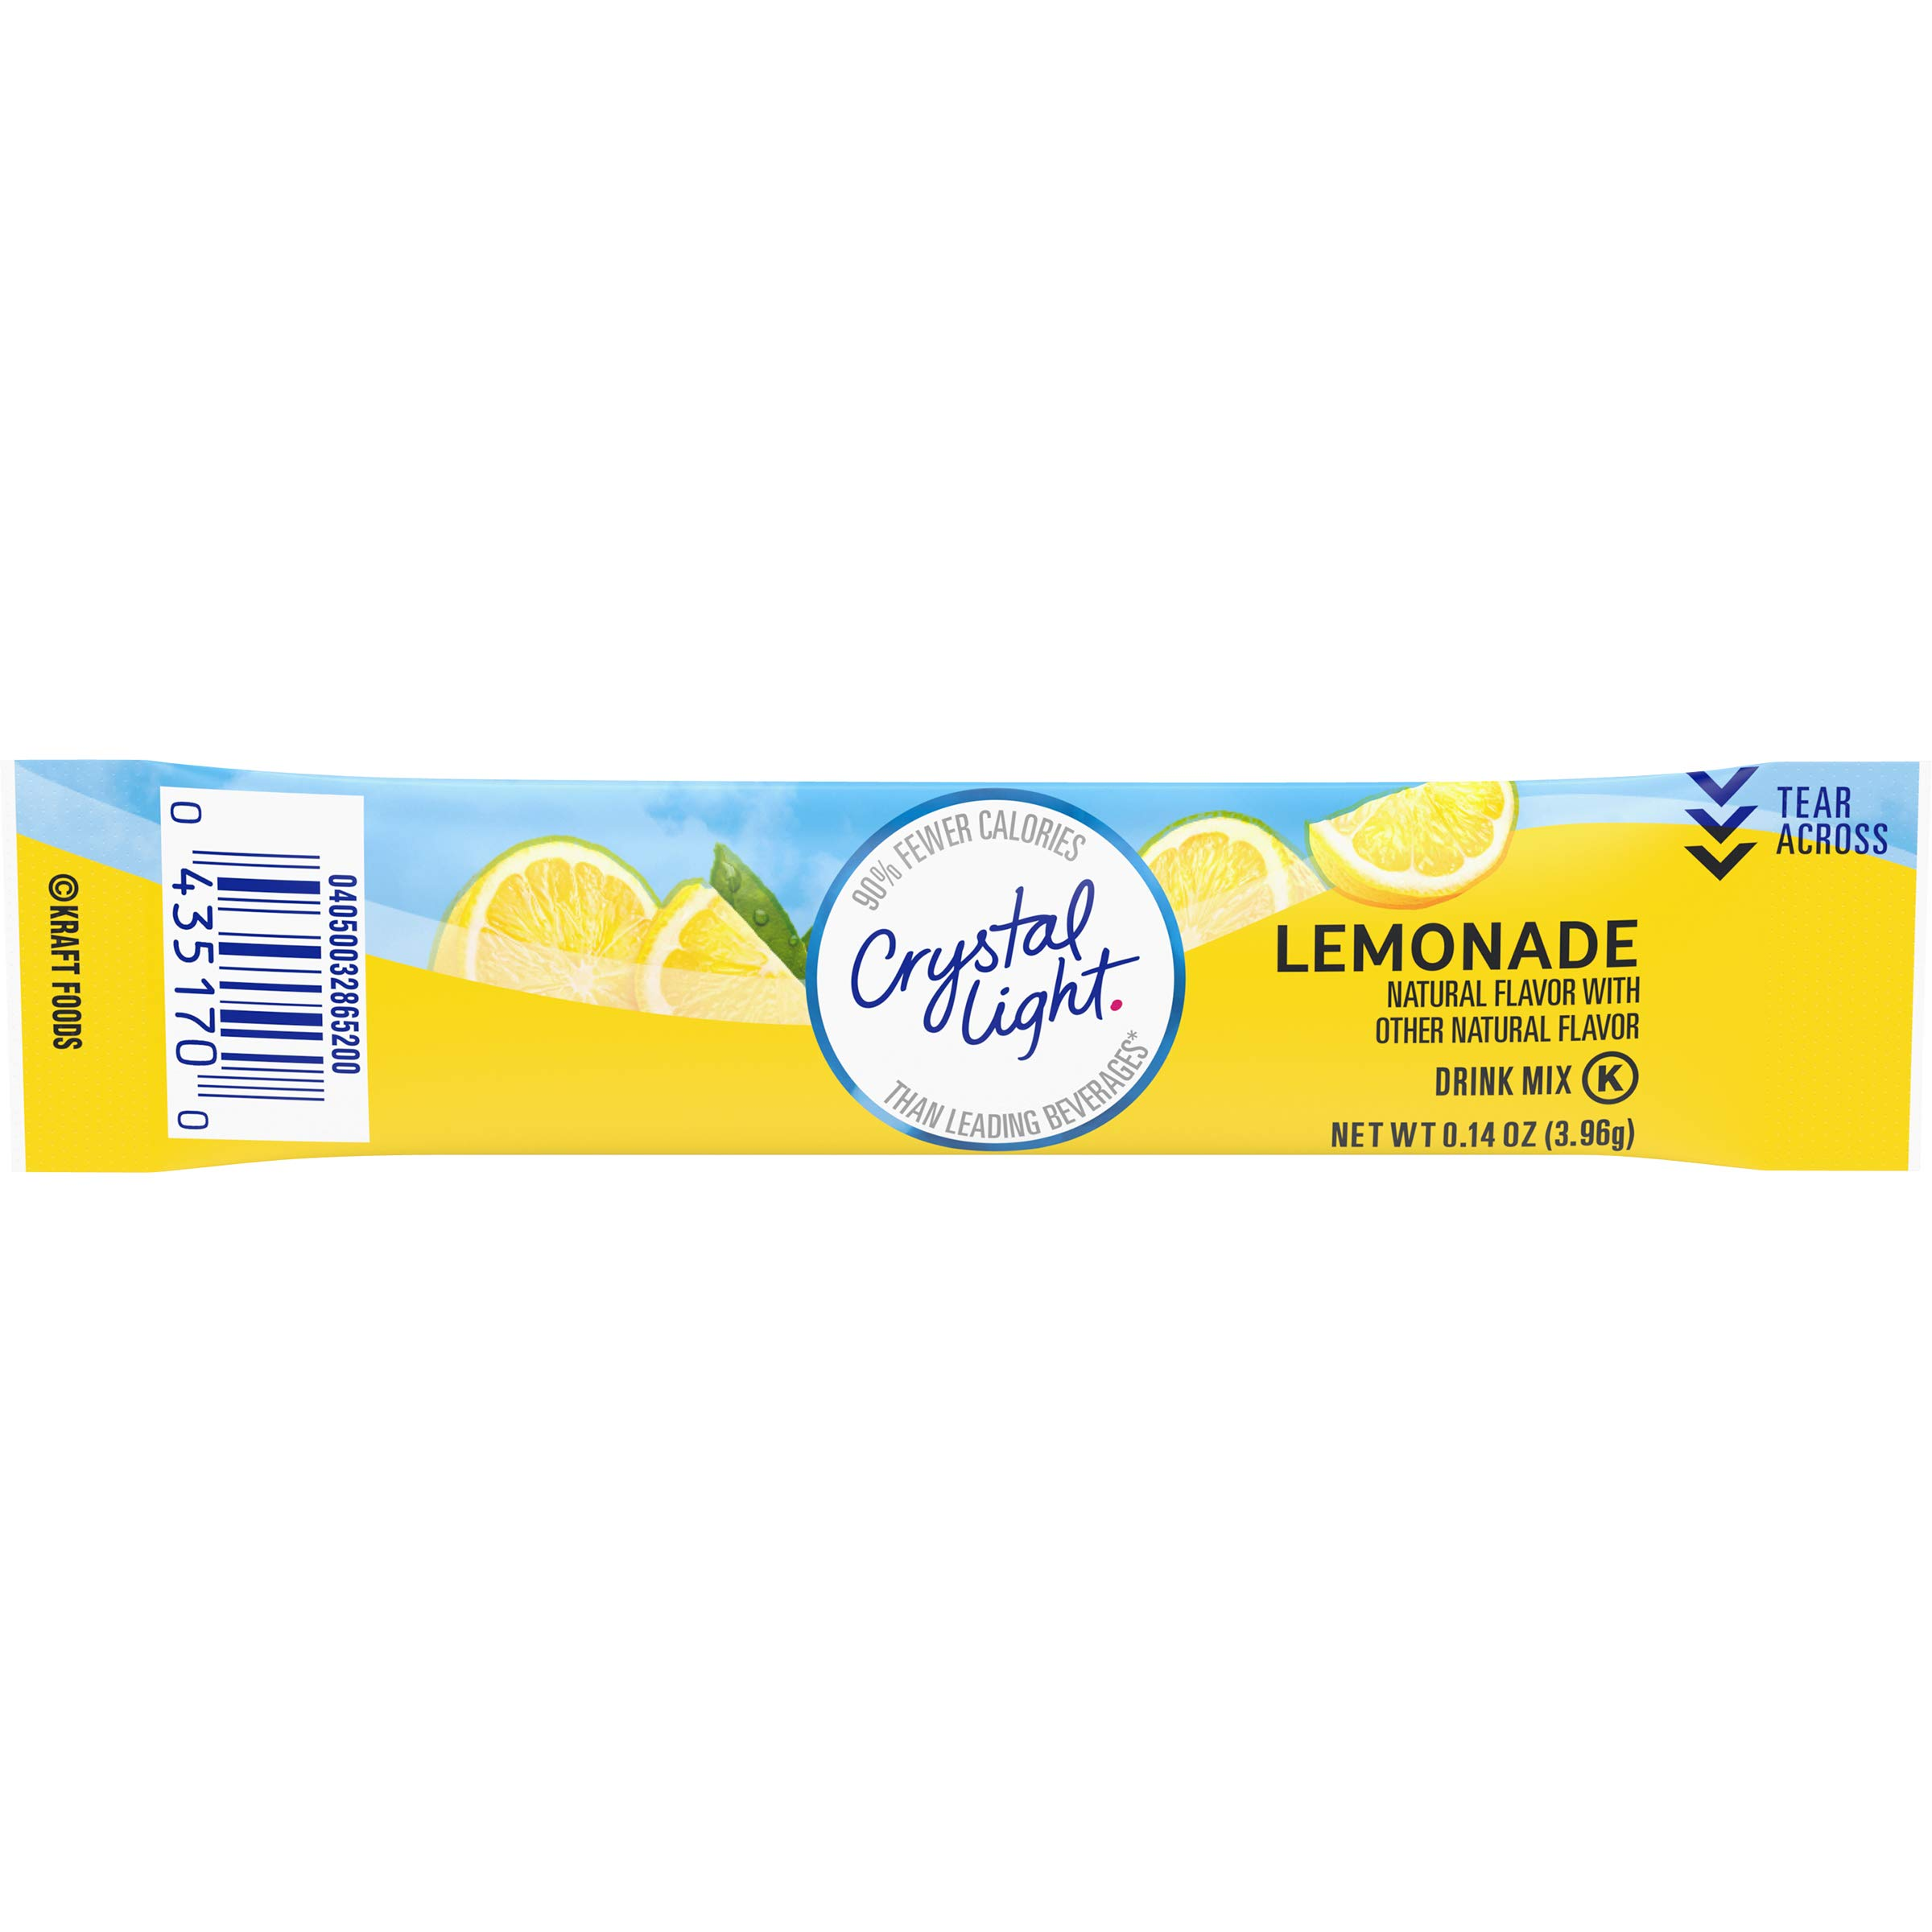 Crystal Light Sugar Free Lemonade Powdered Drink Mix, Caffeine Free, 0.14 oz Packet pack of 12 cartons with 10 each